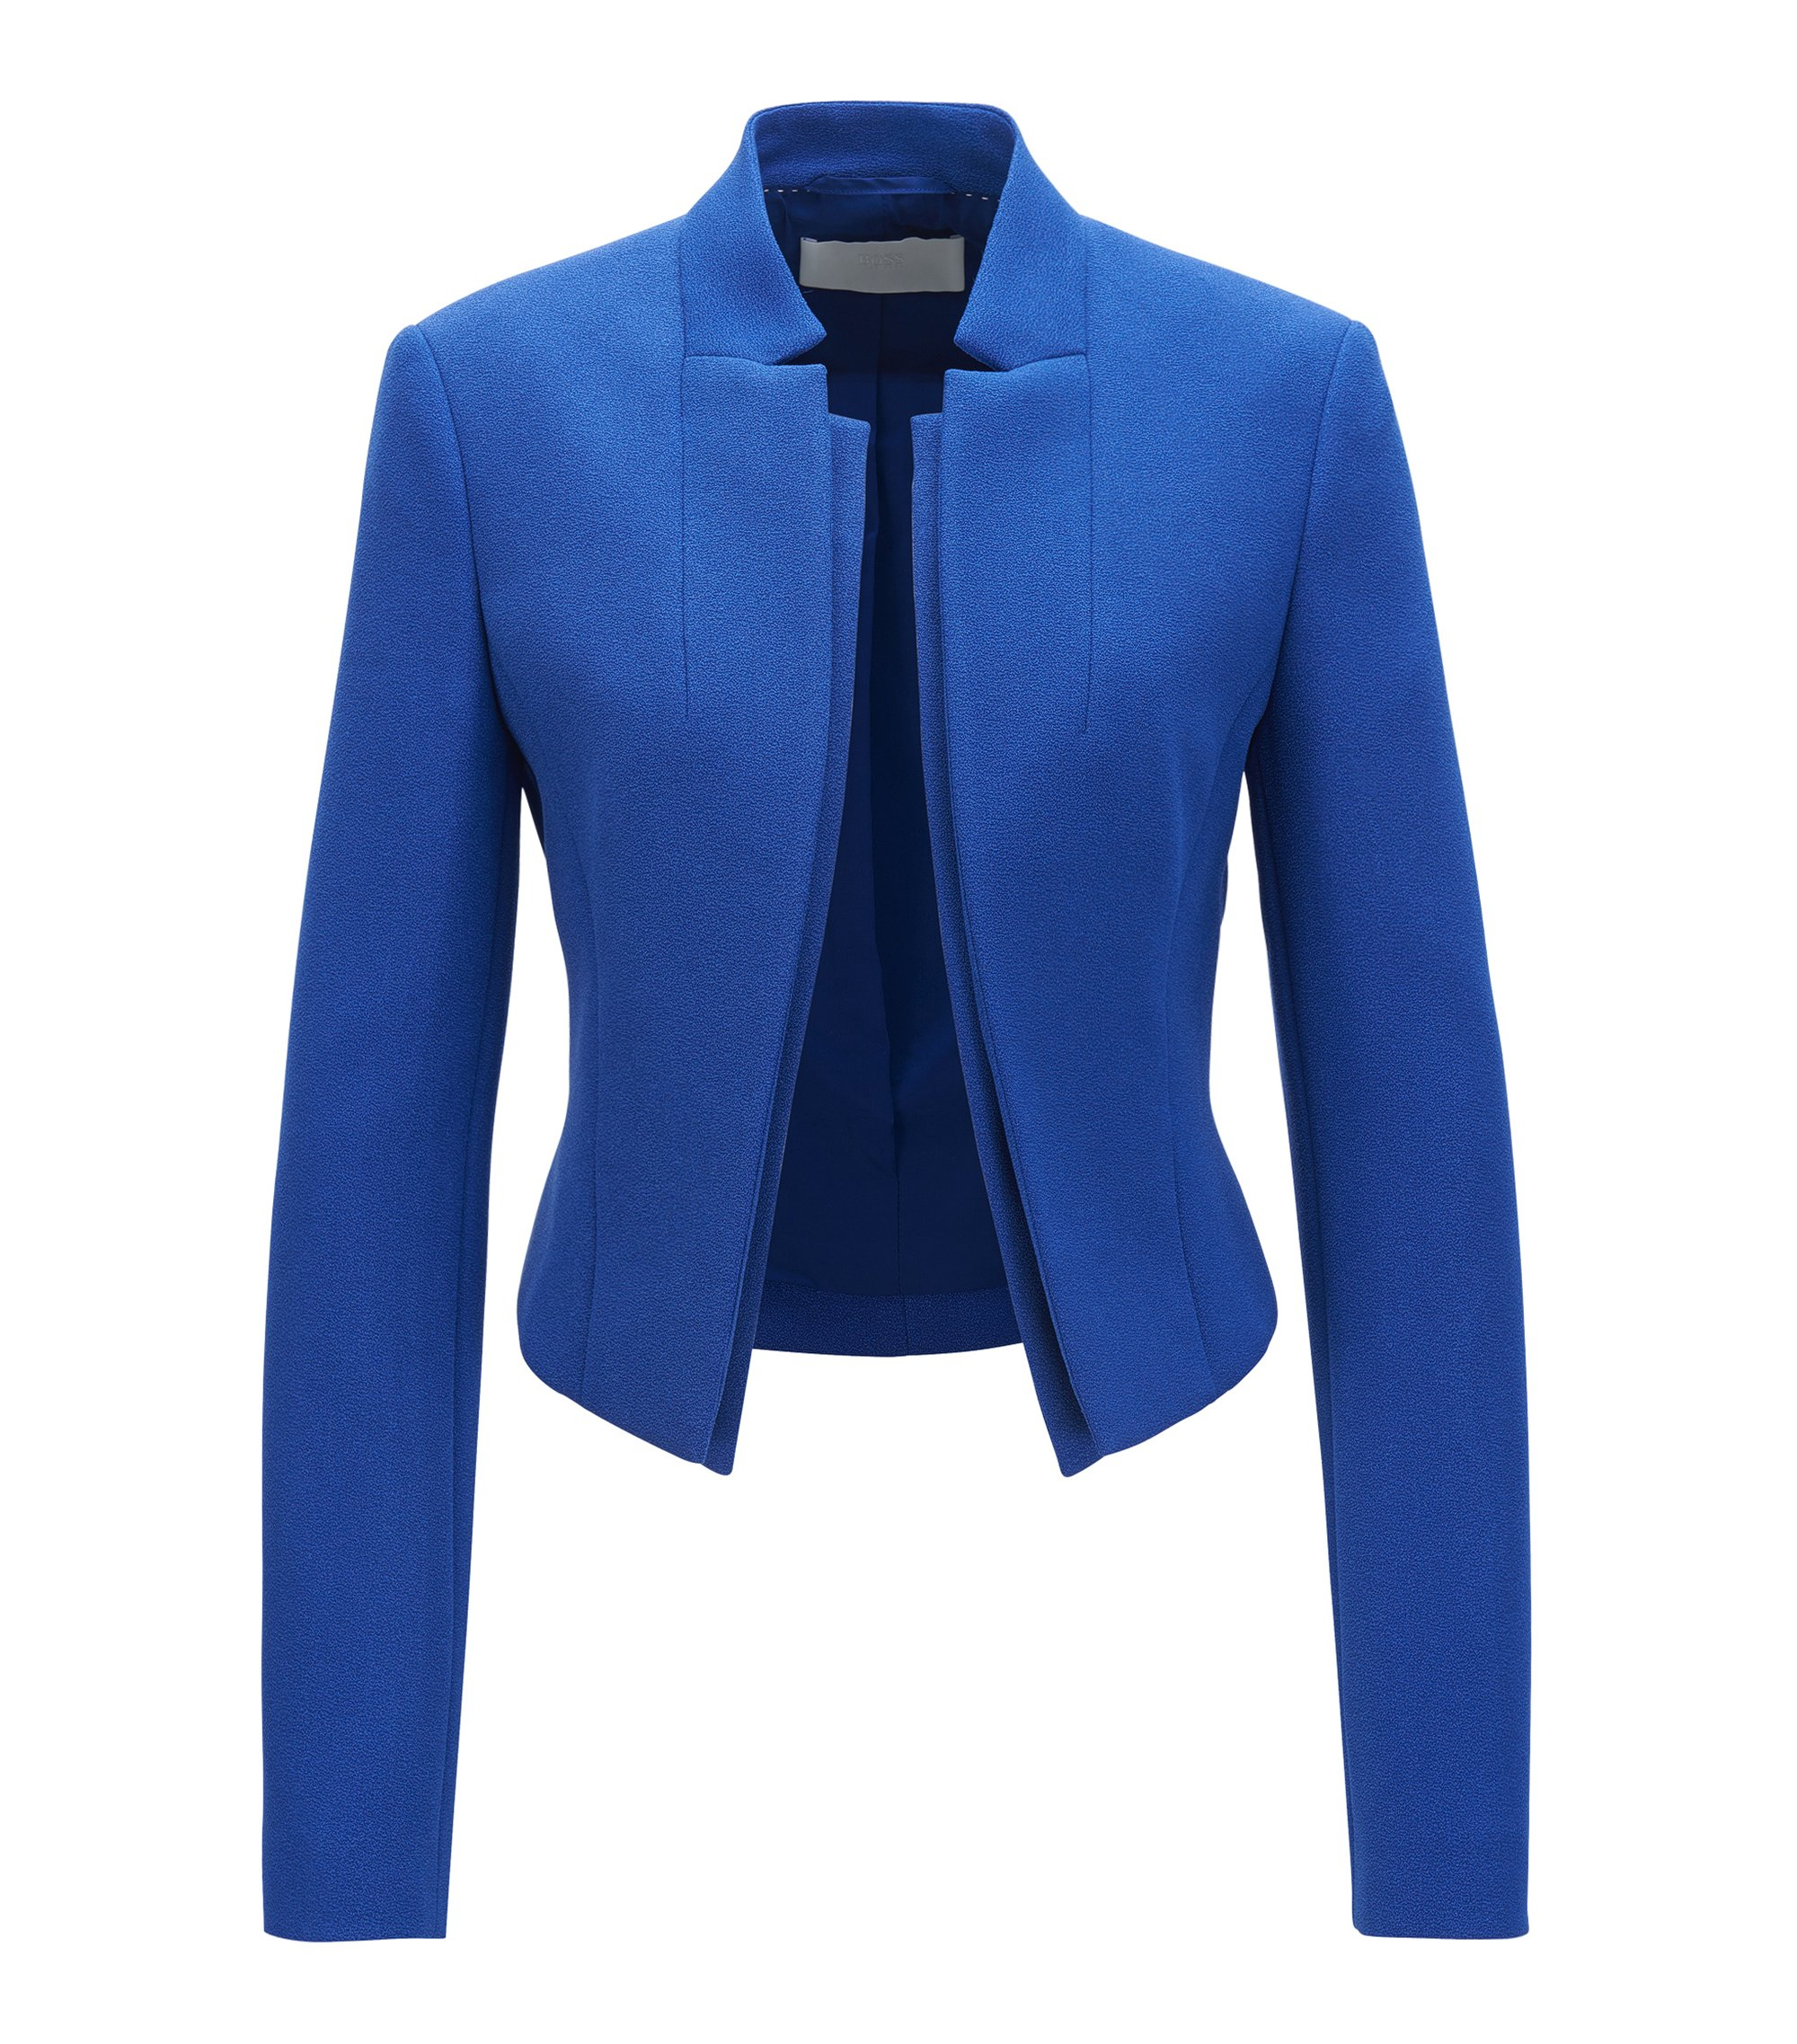 Giacca regular fit in crêpe con revers a doppio strato, Blu